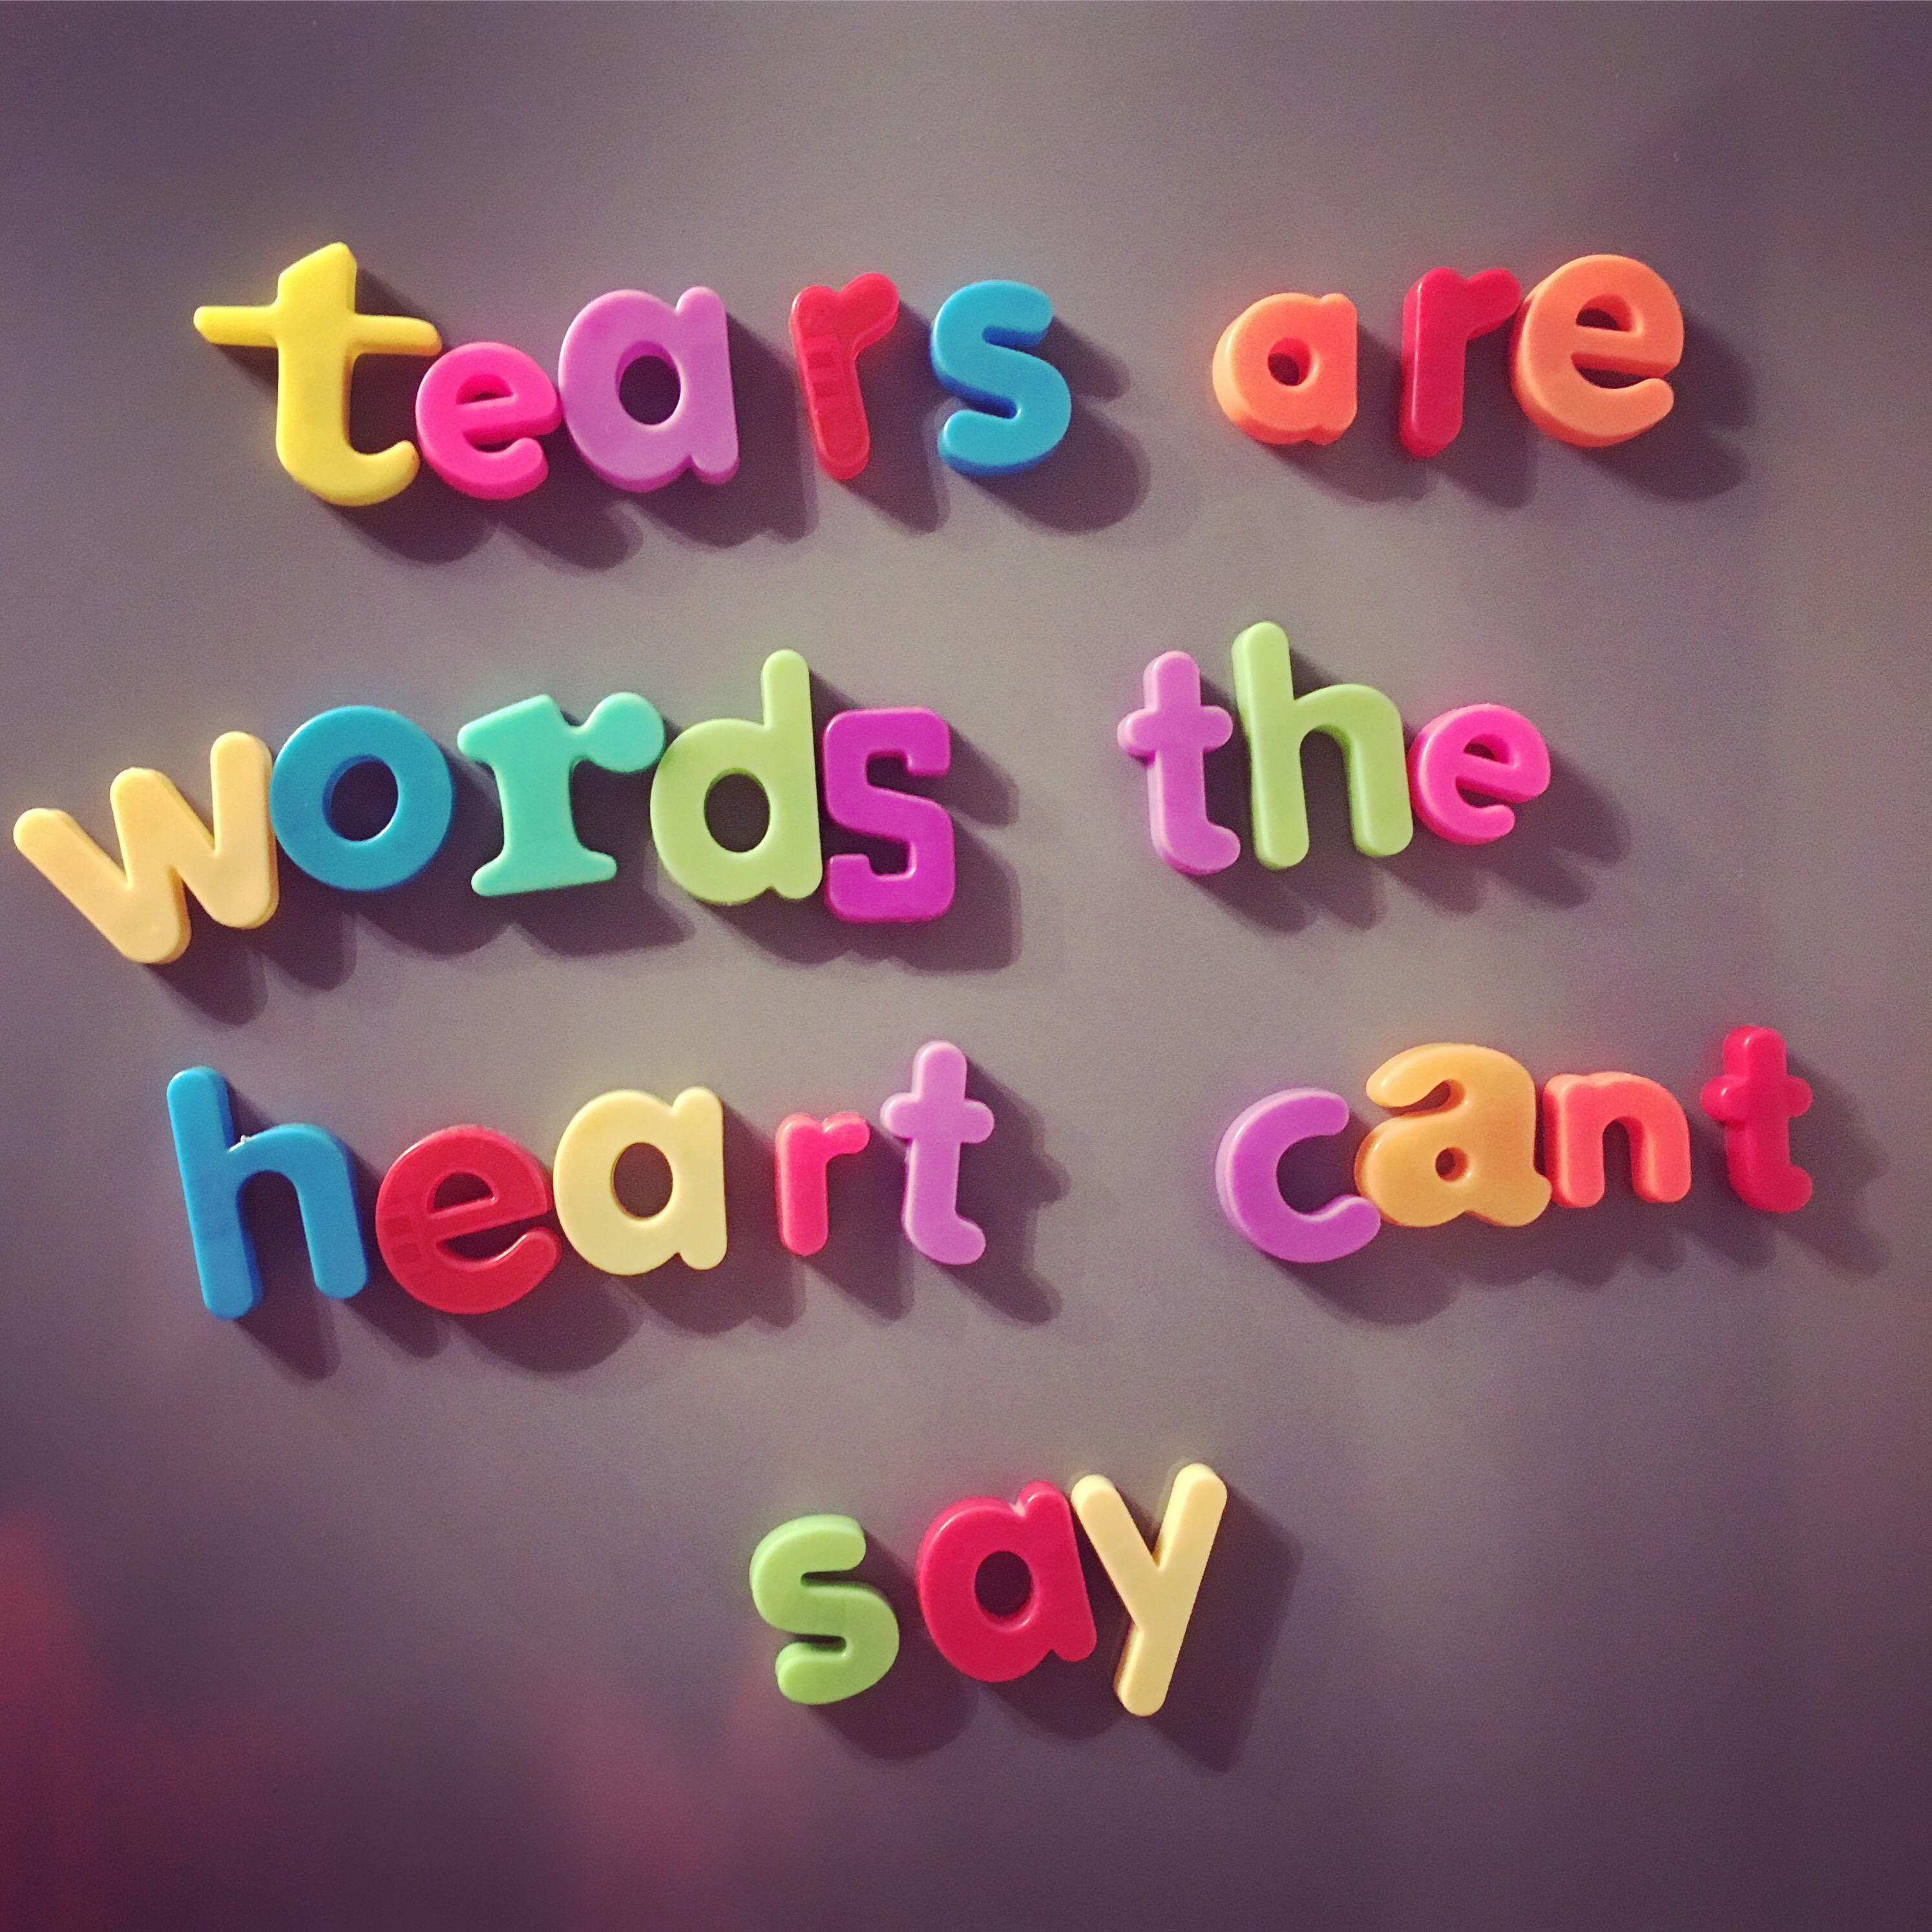 Tears Are Words The Heart Cant Say Whatmyfridgesays